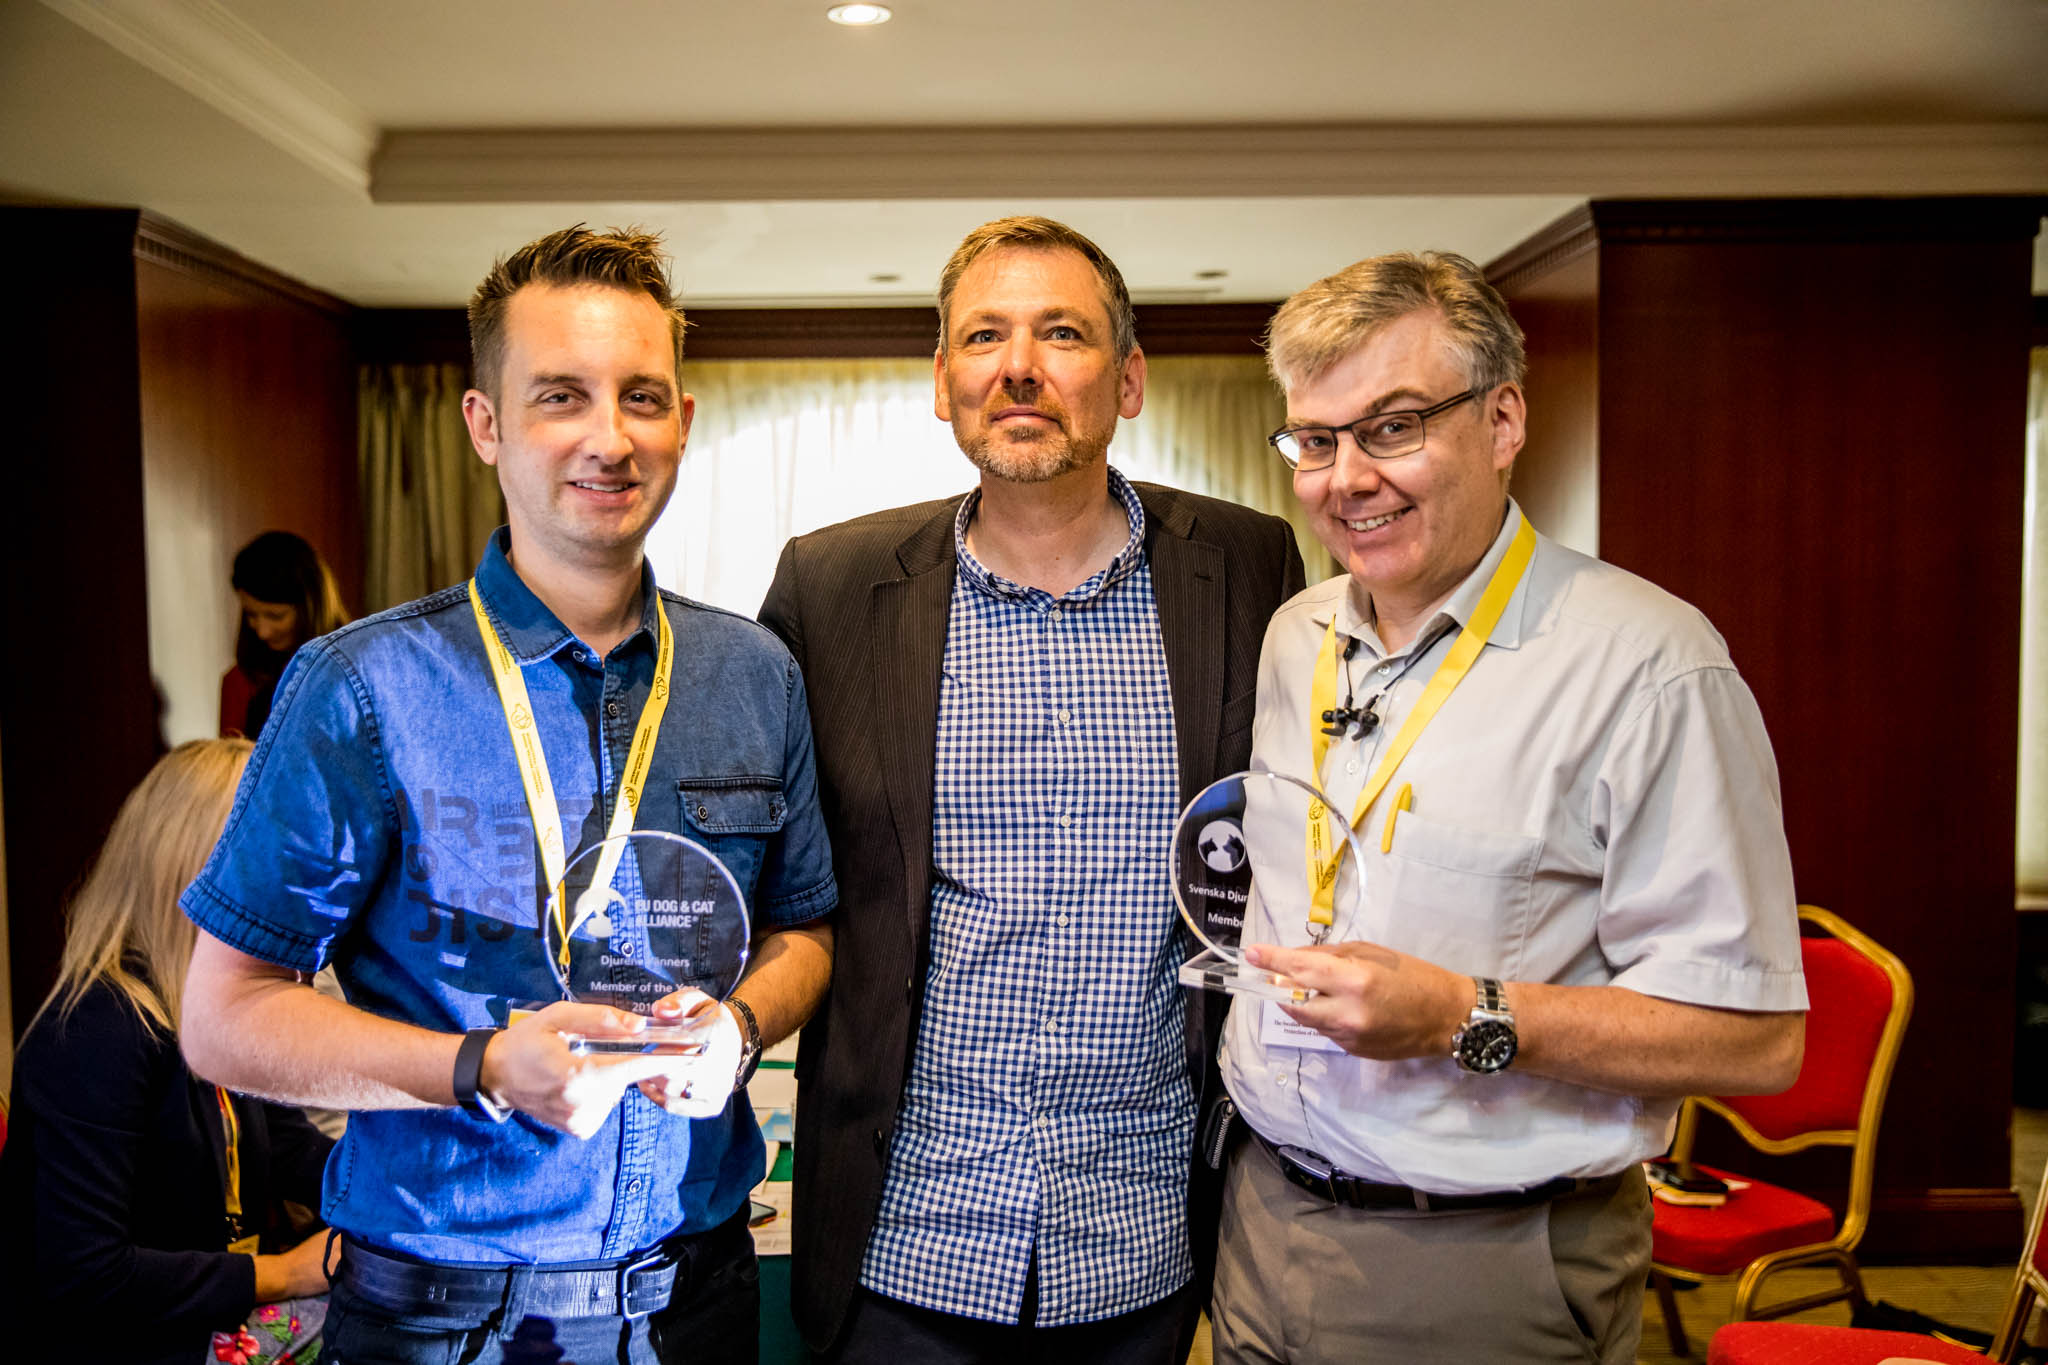 EU Dog & Cat Alliance 2019 Awards presented to most active members